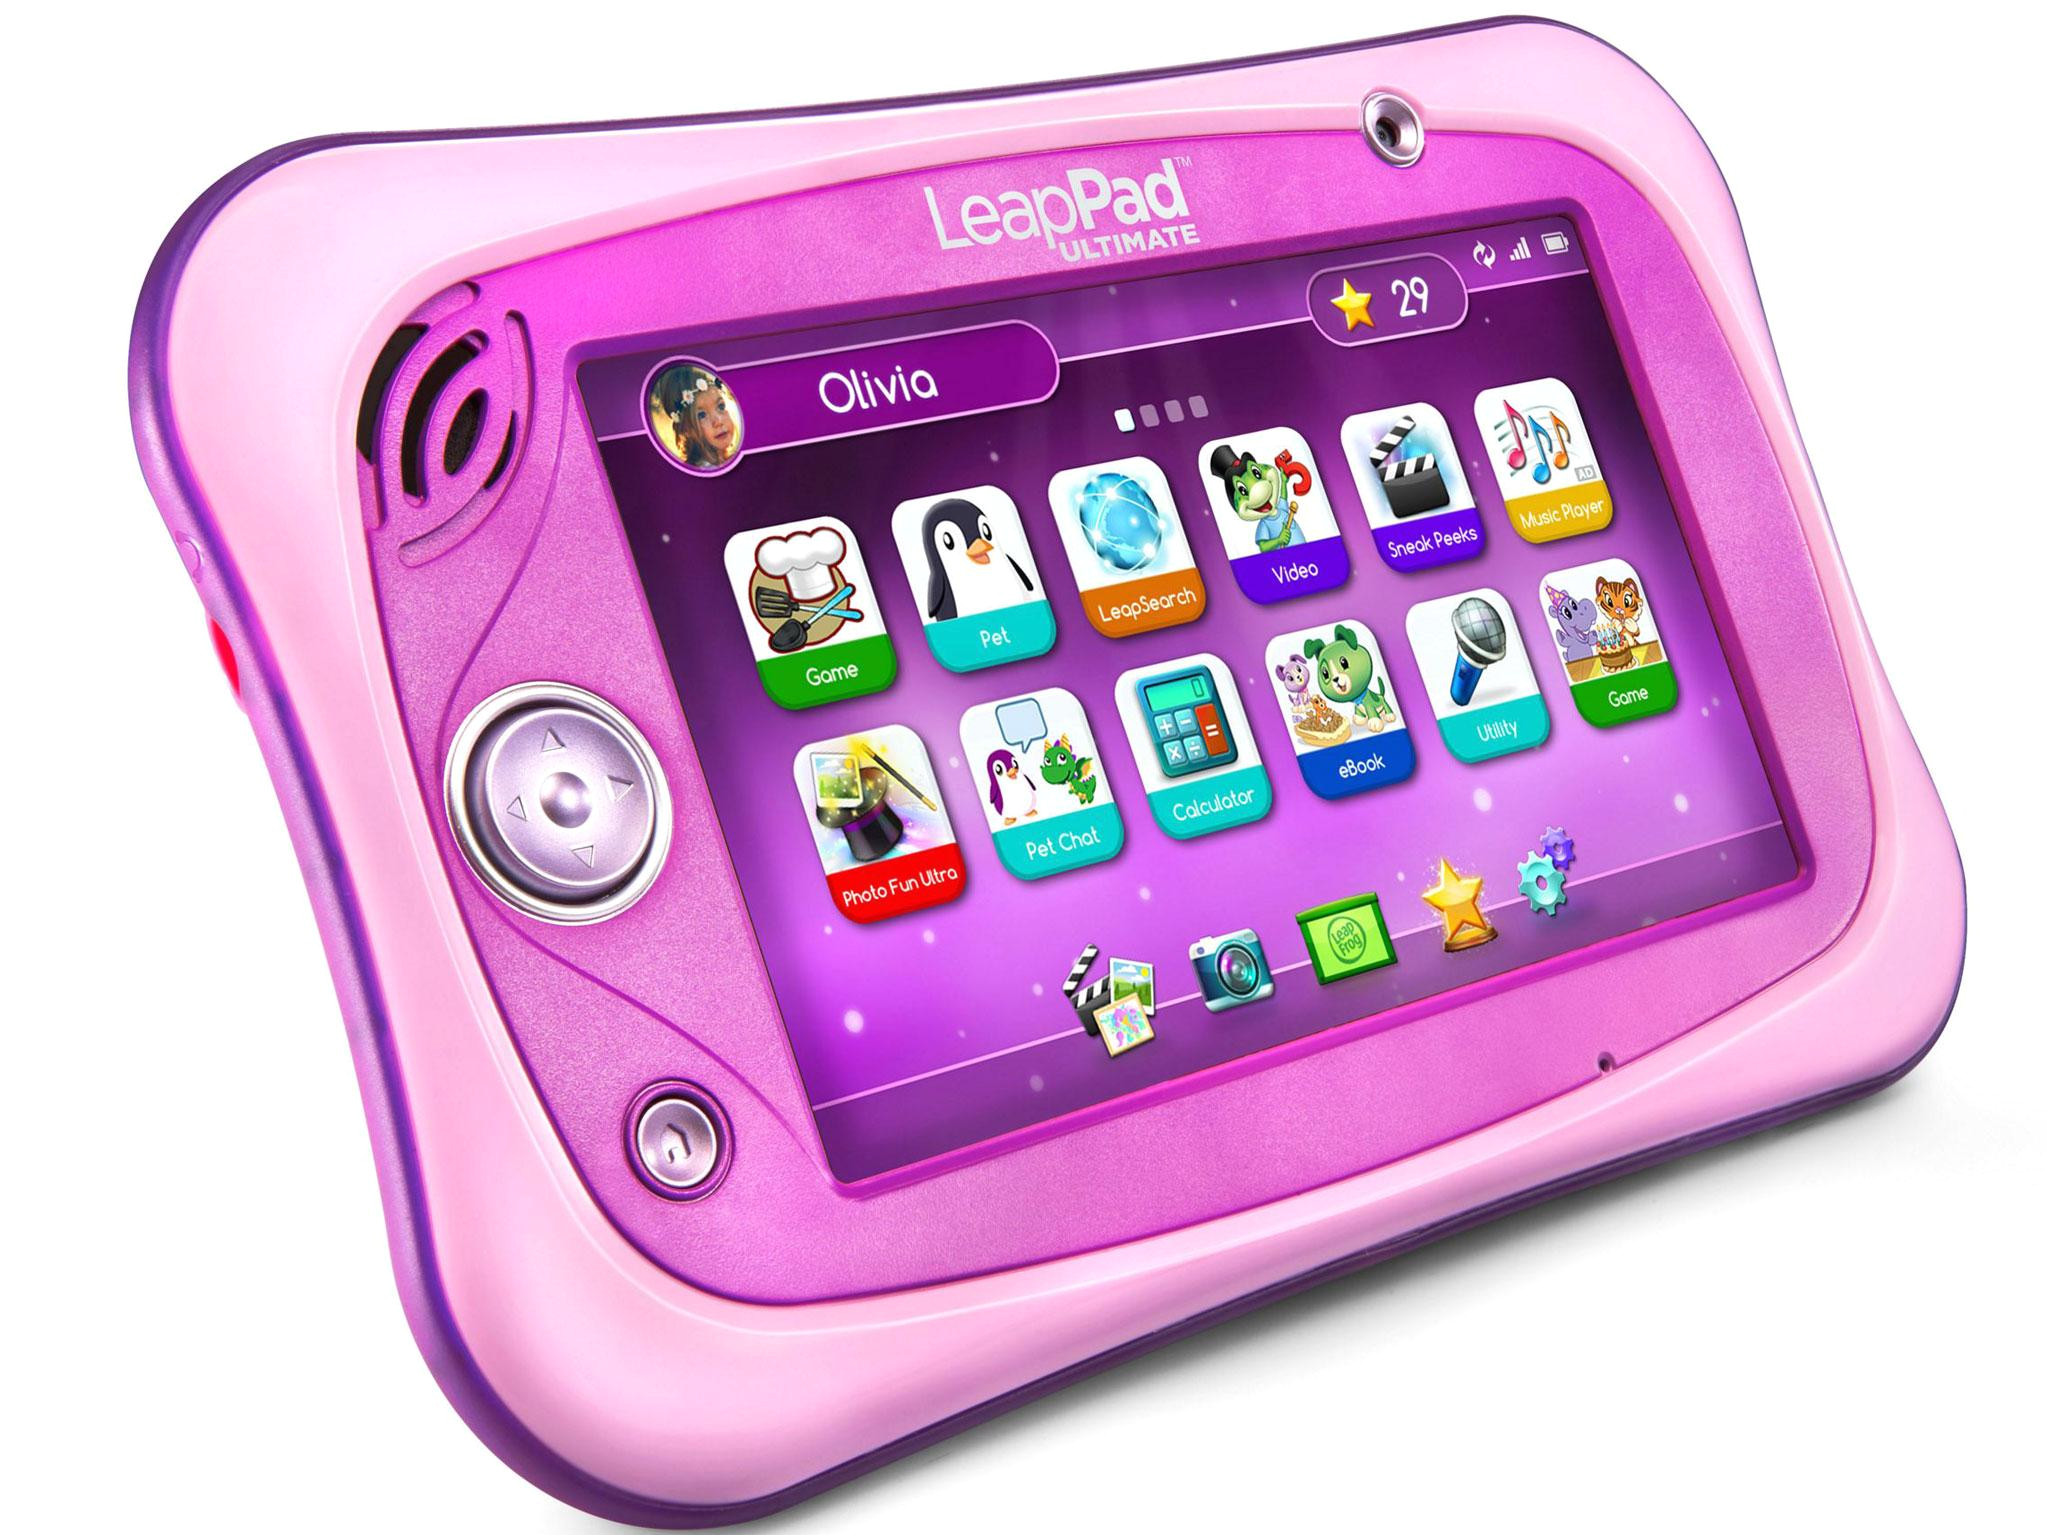 available in trademark green and now a bright bright pink version too the leappad ultimate is solid and tough with a 7 inch display like all the tablets